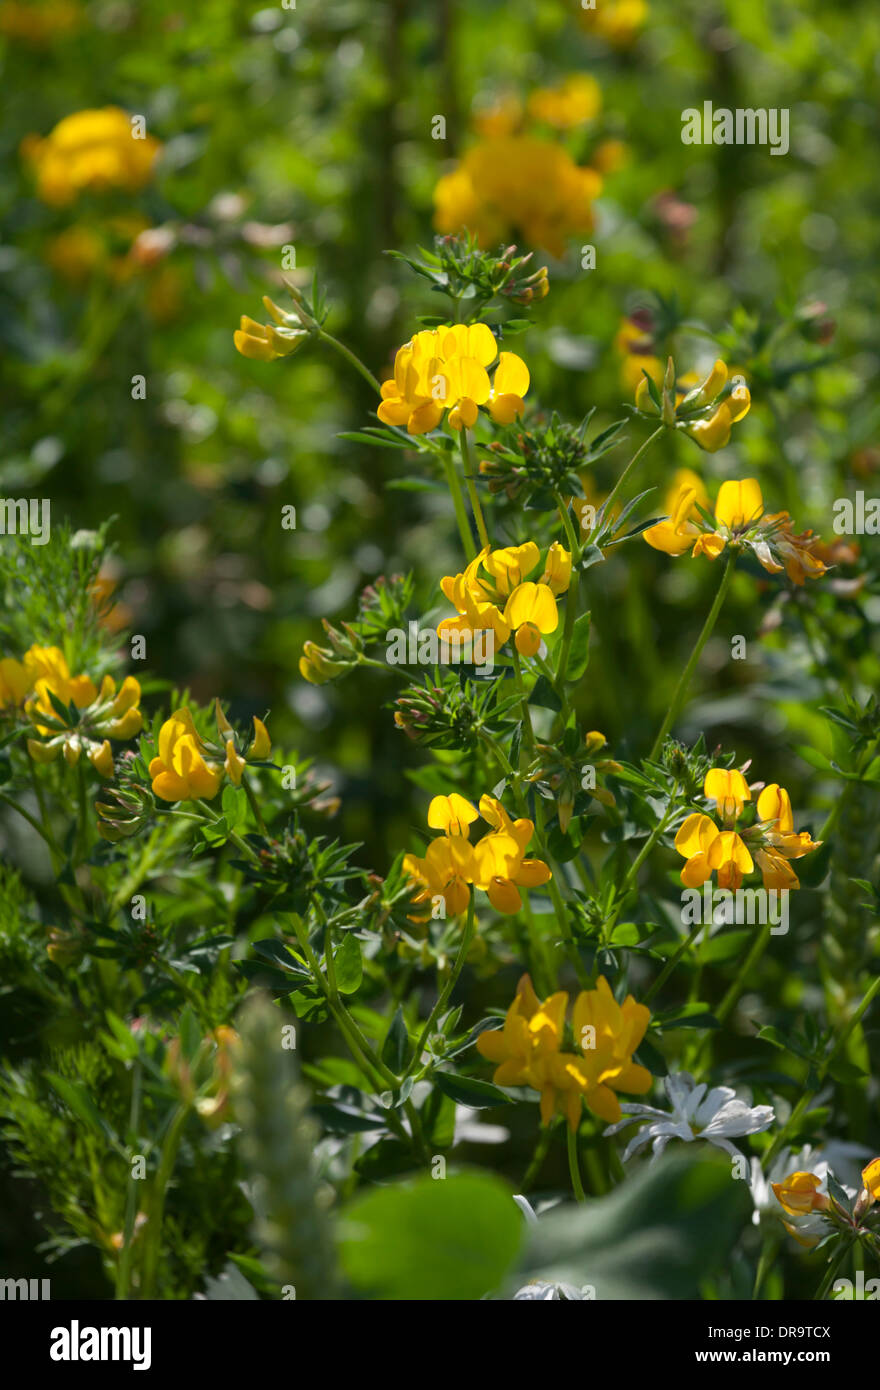 Yellow vetch flowers stock photo 65984938 alamy yellow vetch flowers mightylinksfo